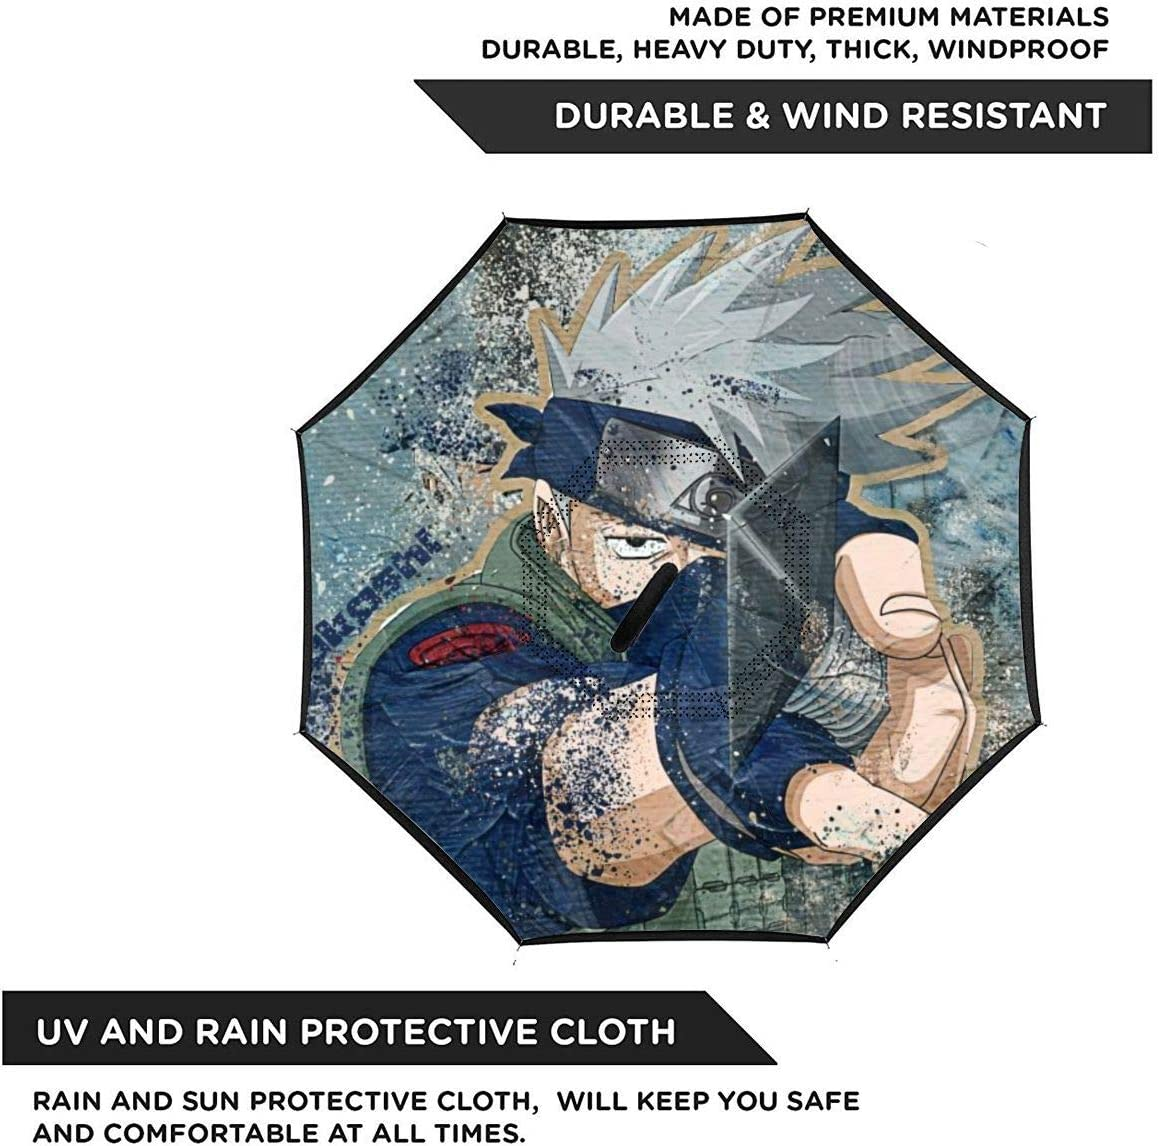 Windproof And Rainproof Double Folding Inverted Umbrella Naruto Hatake Kakashi Anime Car Reverse Umbrella With C-Shaped Handle UV Protection Inverted Folding Umbrellas